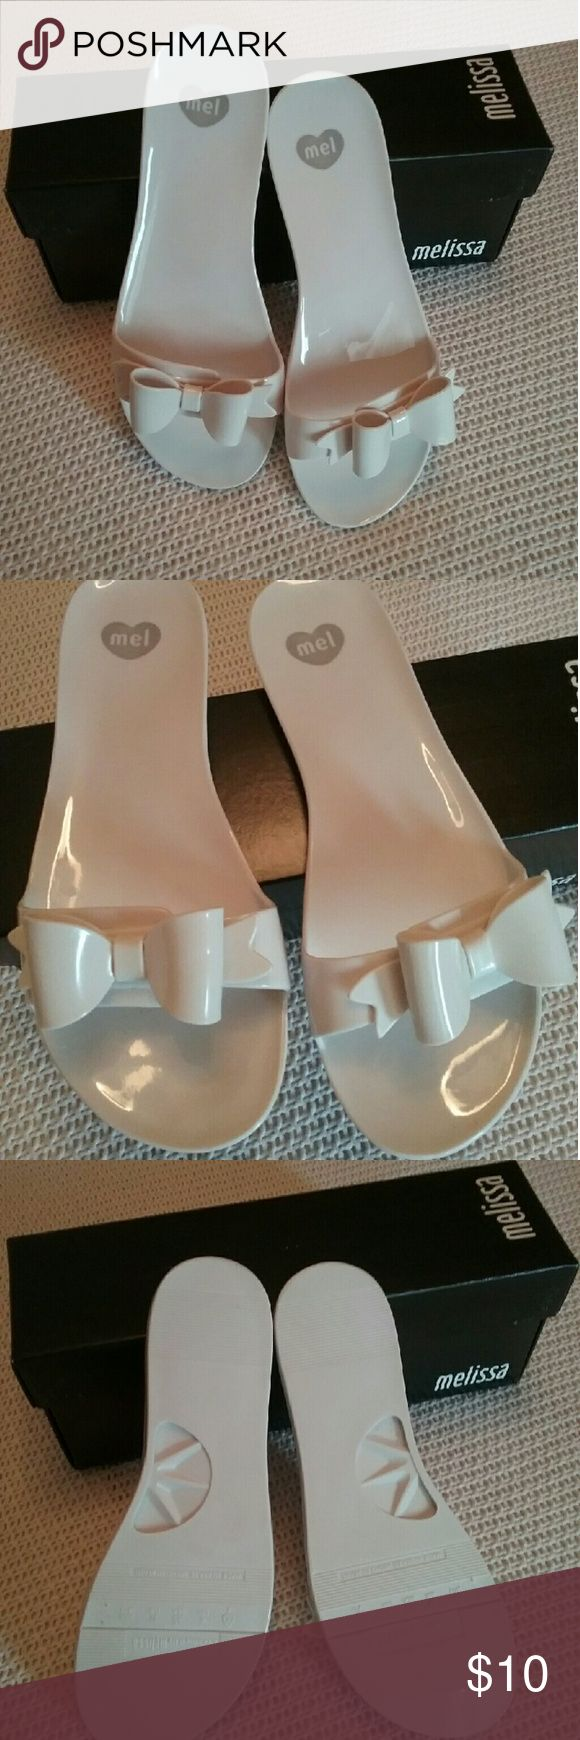 Melissa Flats MELISSA FLATS in off white   Lightly worn thought out..no major marking  Box in included Melissa Shoes Flats & Loafers